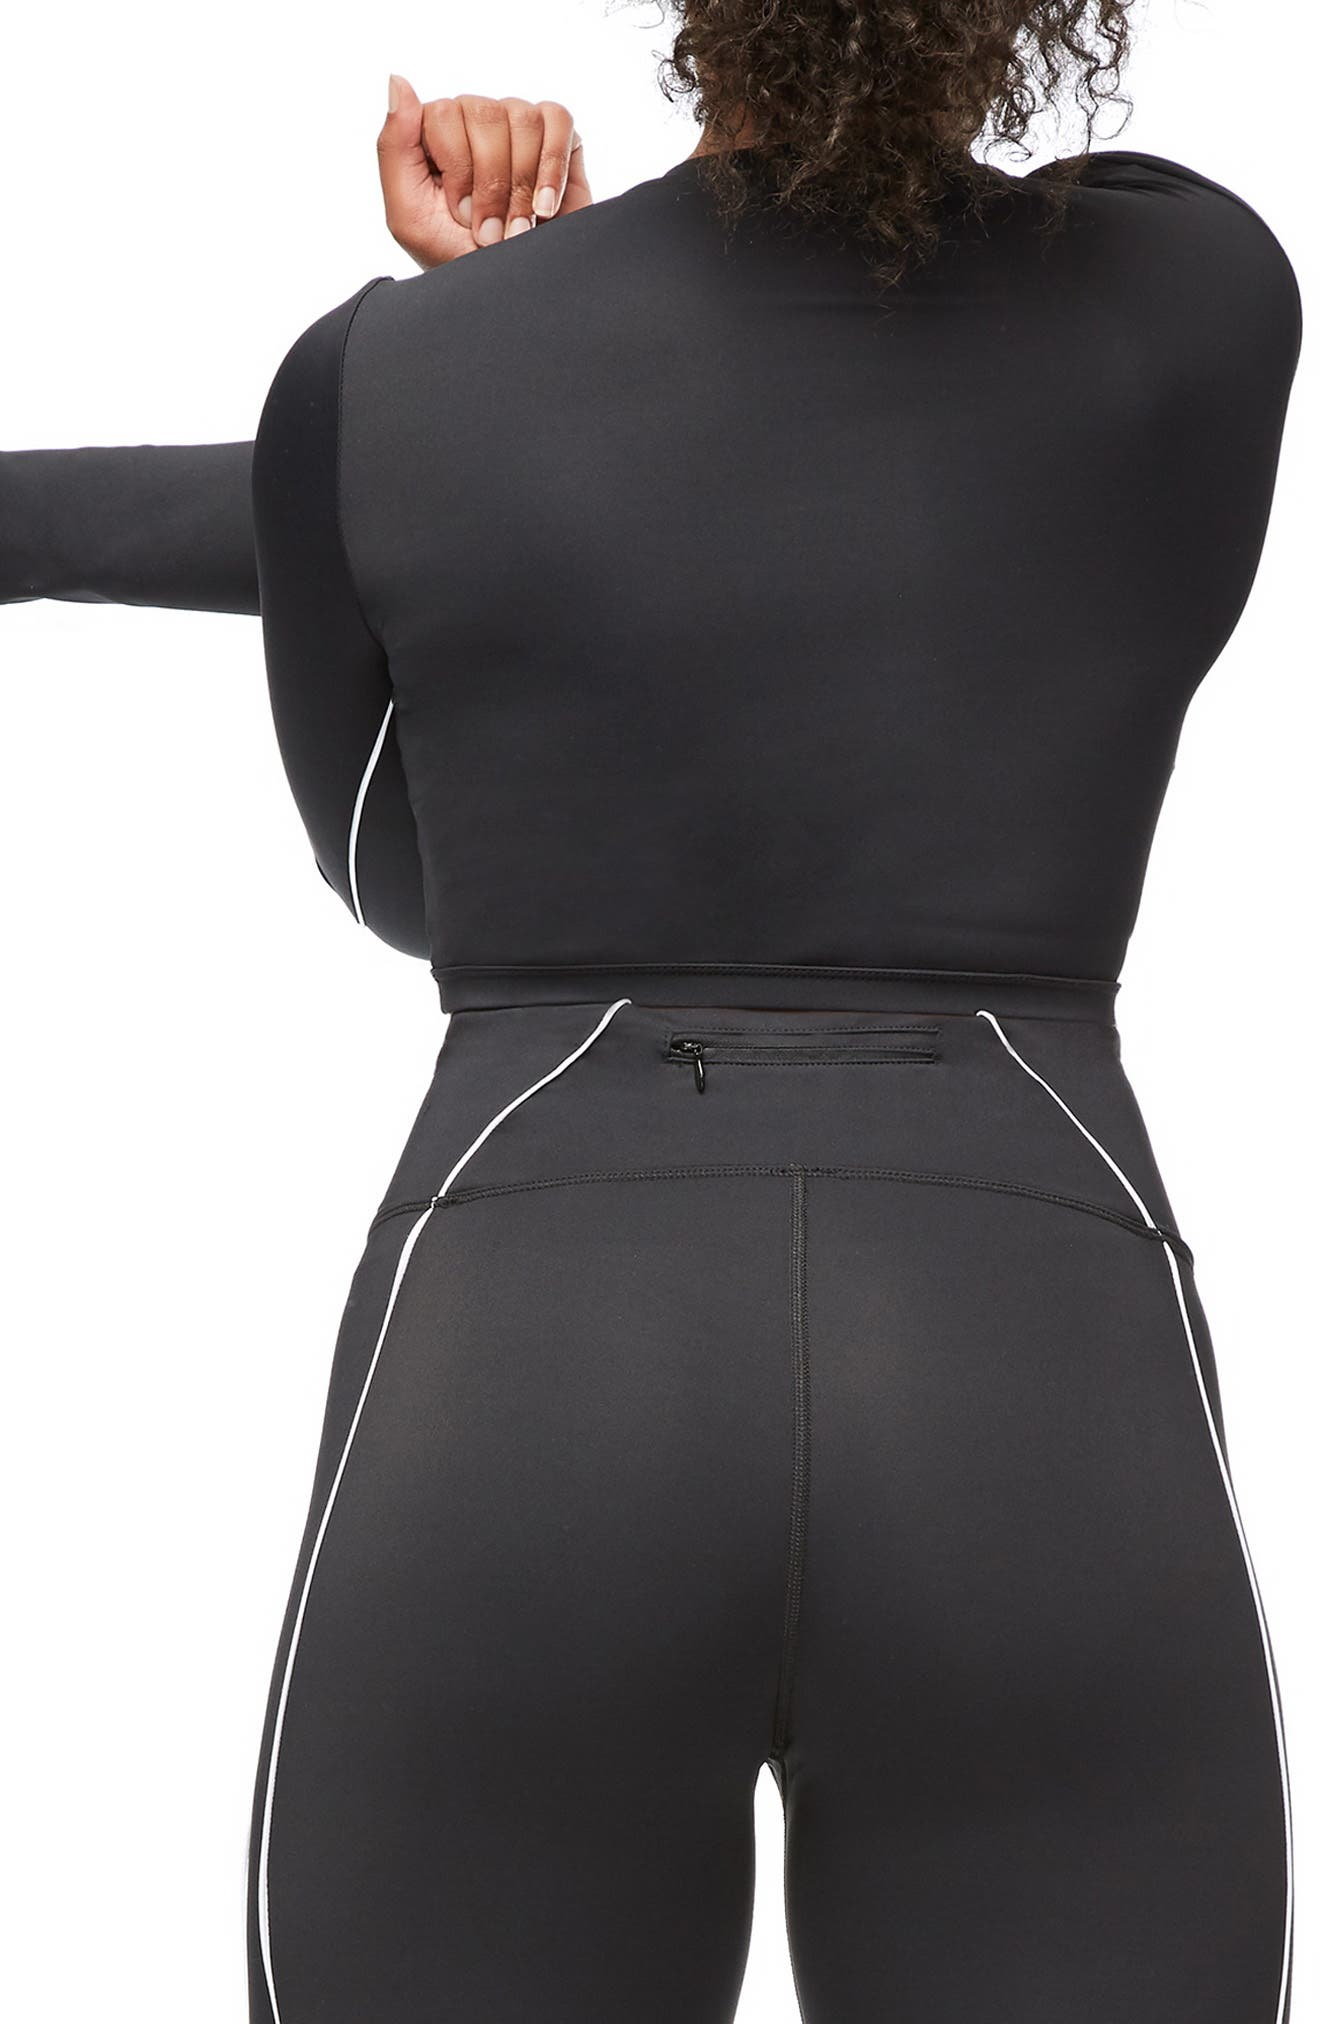 Piped Crop Top,                             Alternate thumbnail 7, color,                             BLACK001